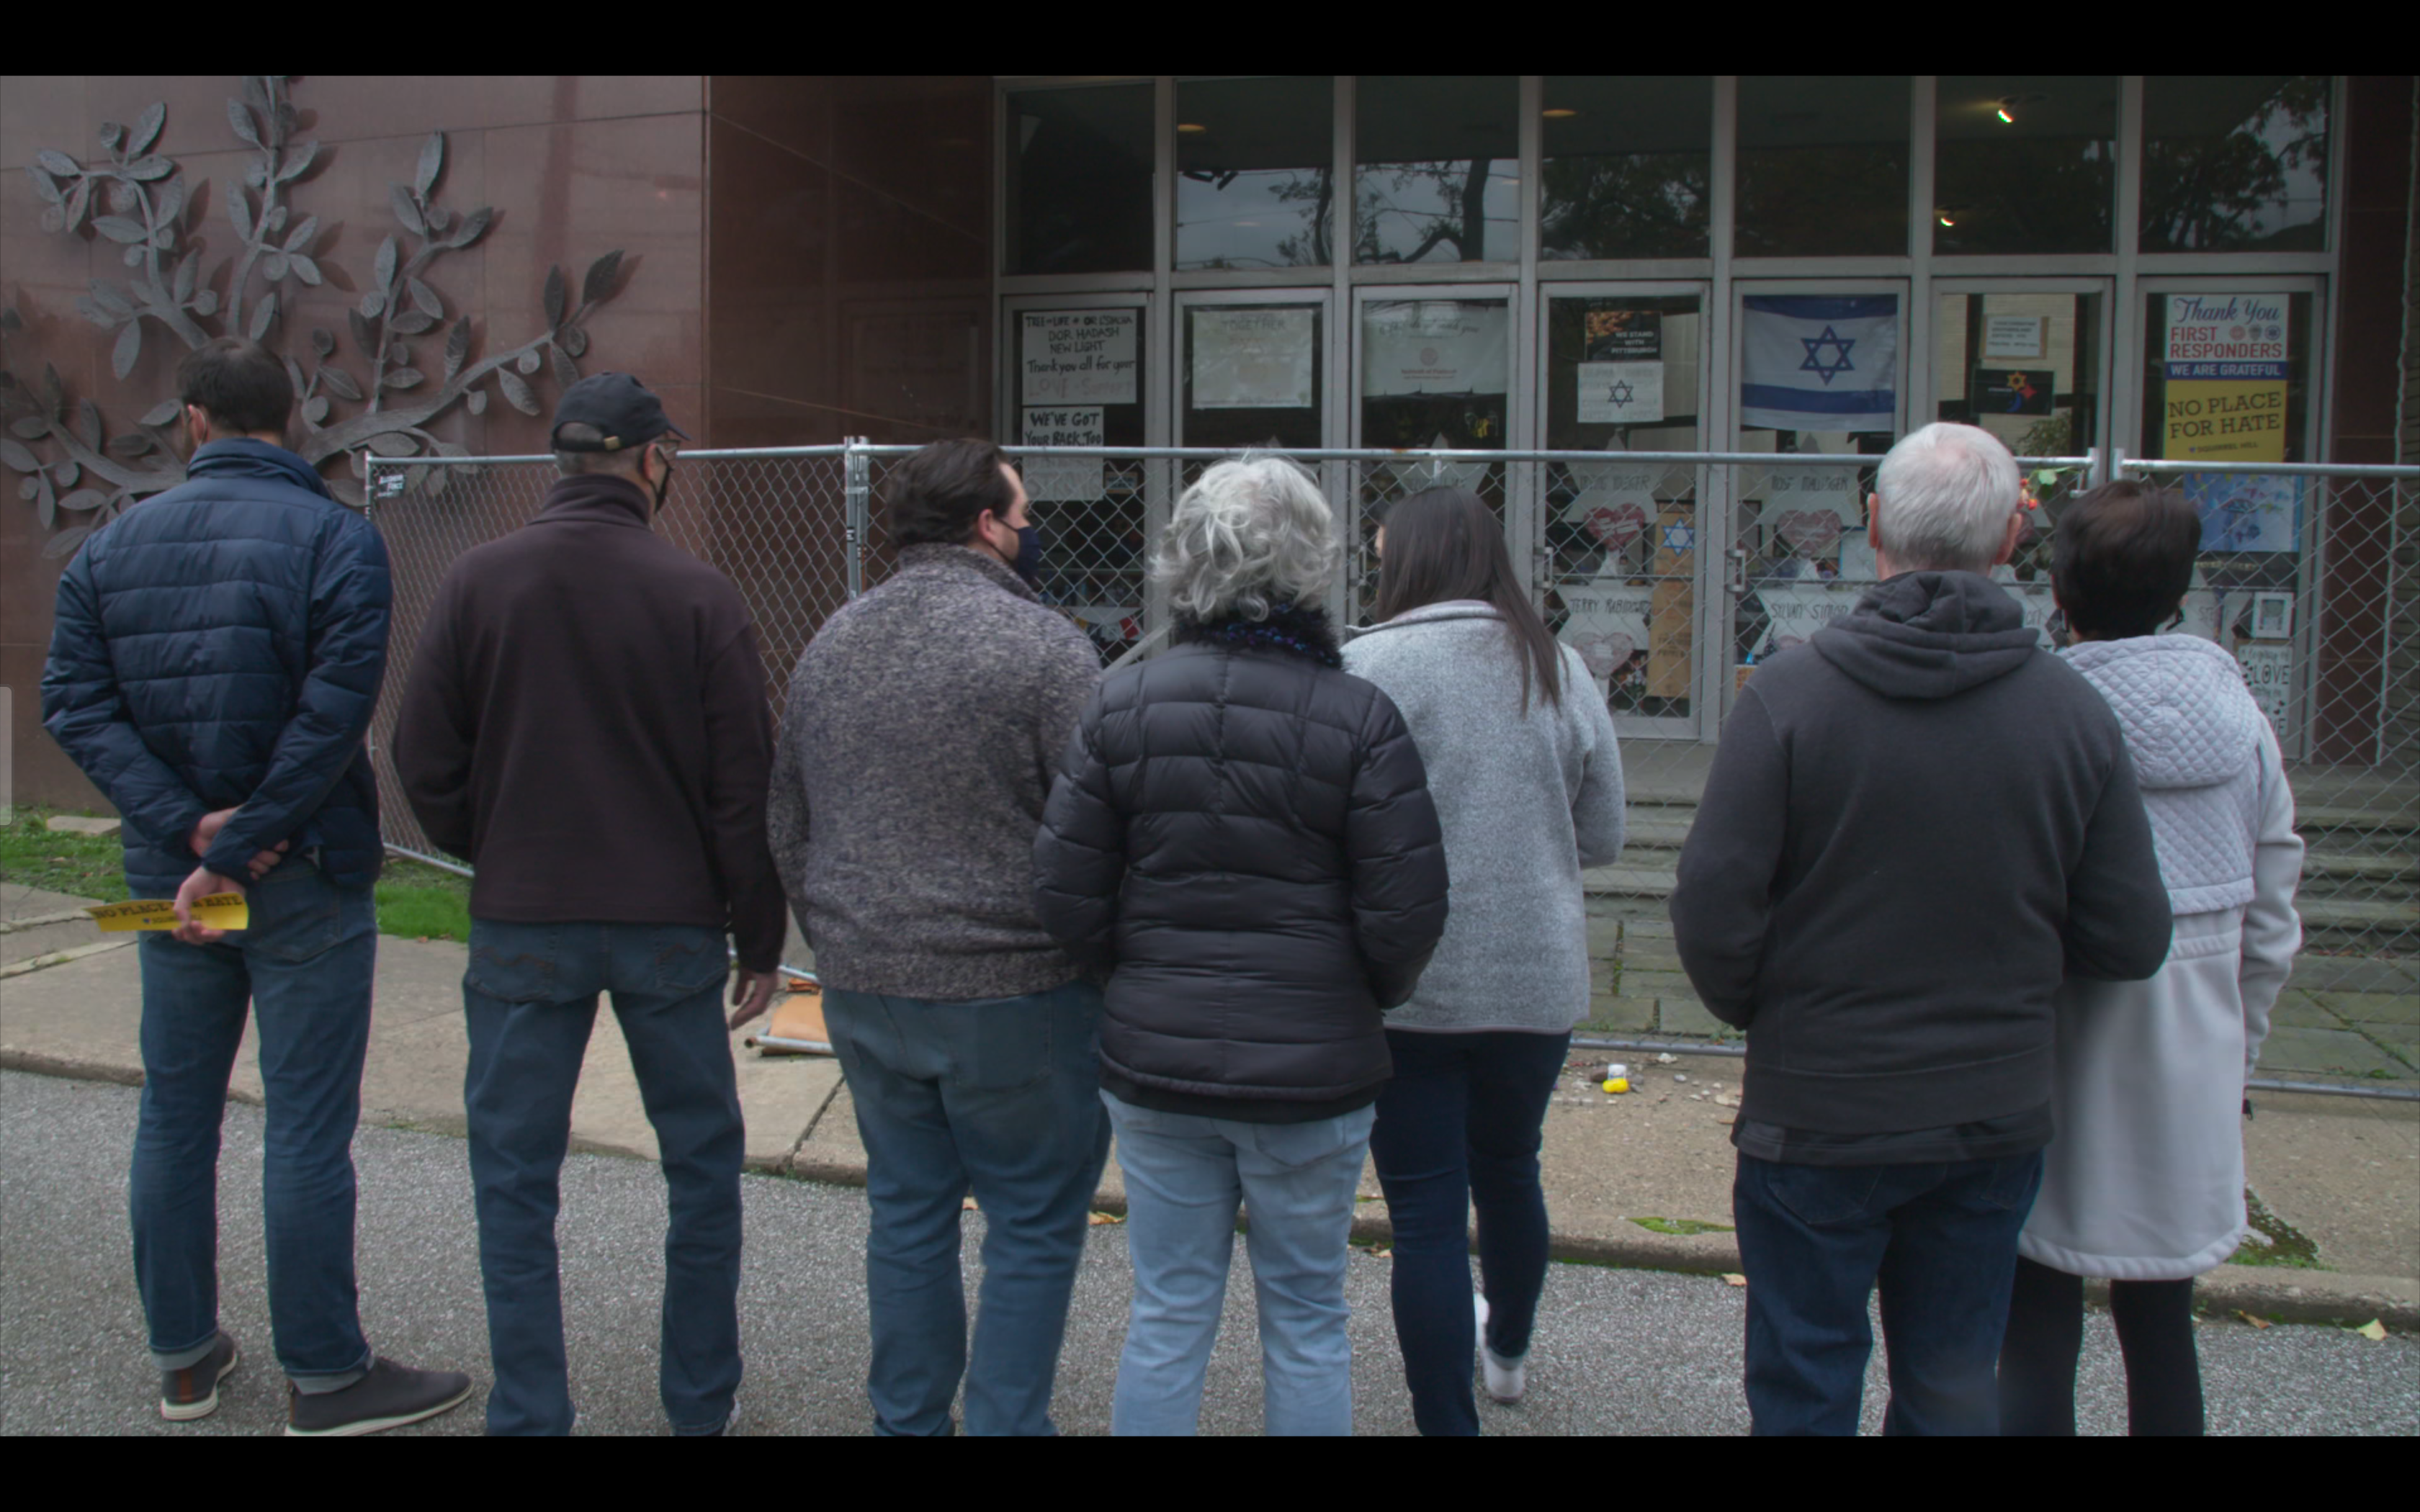 Family members look at the makeshift memorial in the windows that remember those lost at the Tree of Life Synagogue.